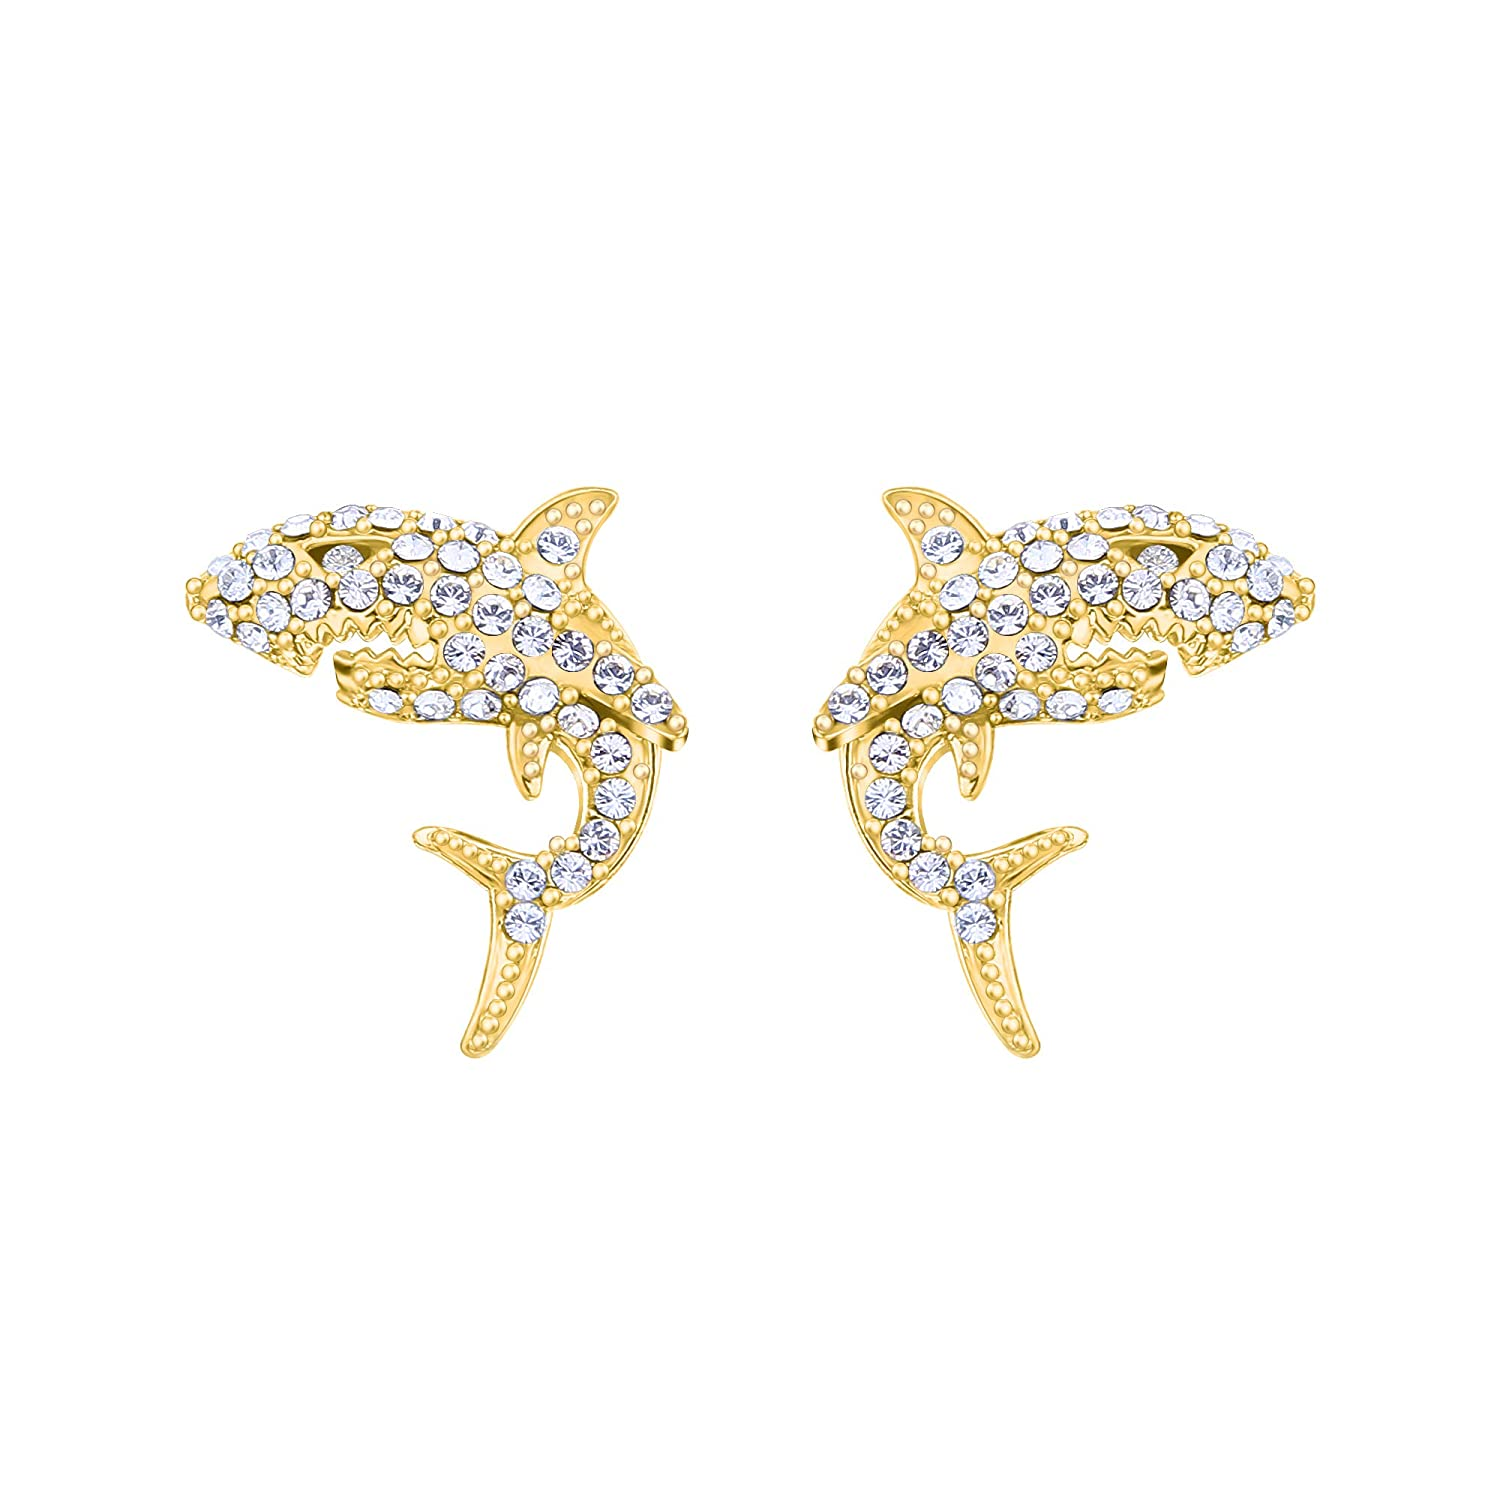 Earrings 16K Gold Plating,Shark Rhinestone Earrings/Stereoscopic 925 Stud Earrings For Women,Created With Swarovski Earrings Modern Style/Mini Bar Charms Earrings,Fashion Earrings Gift For Her Yiwu Yonghai Trading Co. Ltd